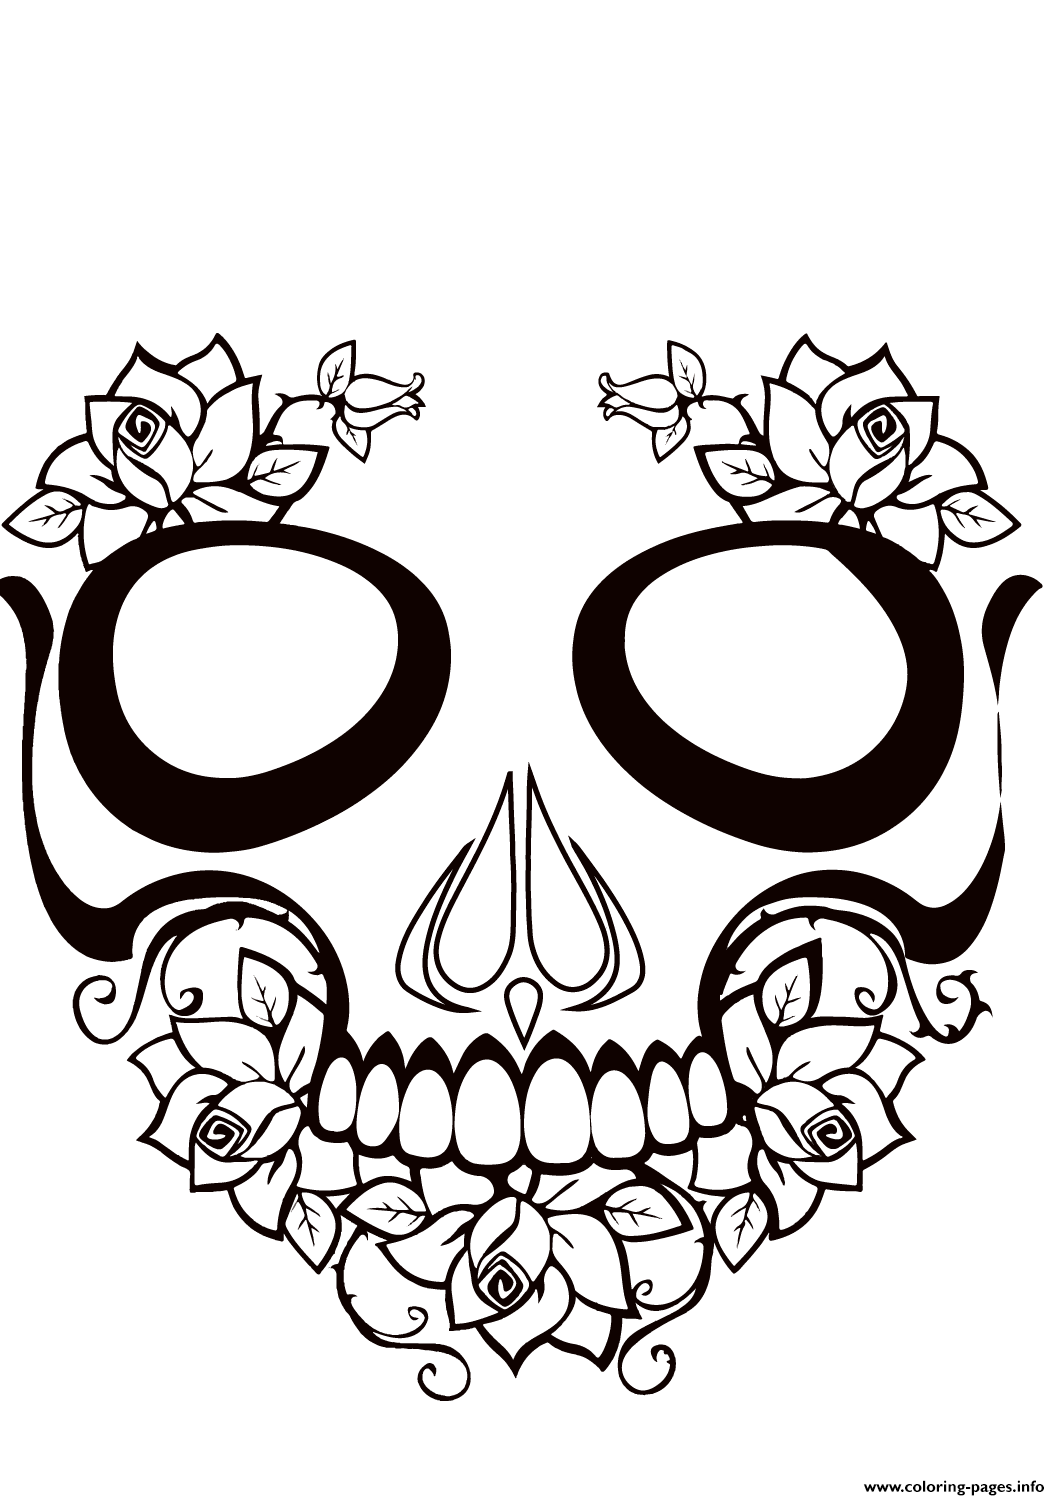 Sugar Skull Hot Calavera Coloring